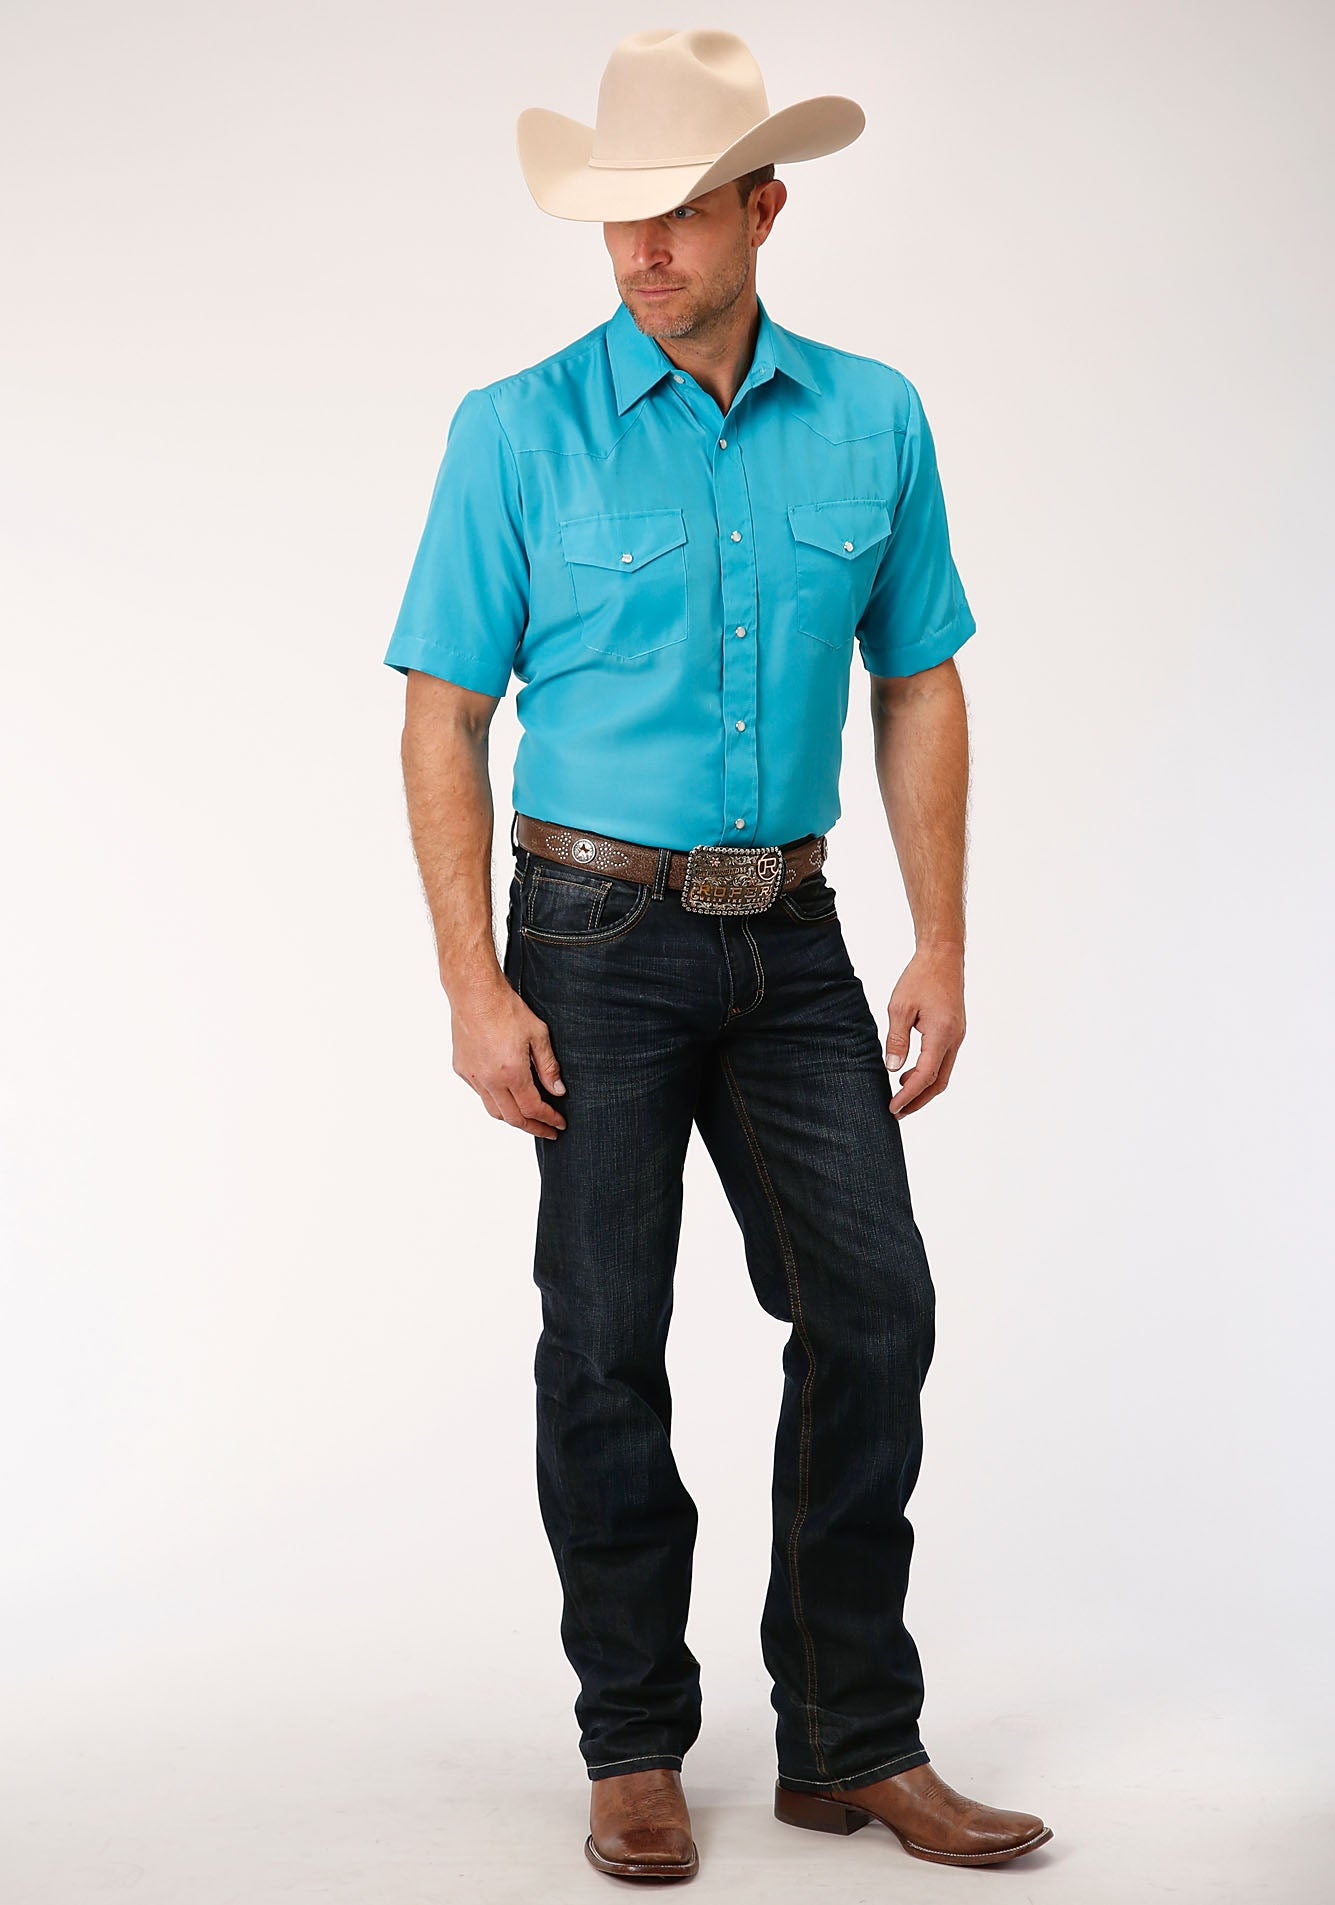 ROPER MENS BLUE 00148 SOLID BROADCLOTH - TURQUOISE KARMAN CLASSICS- 55/45 SOLID SHORT SLEEVE